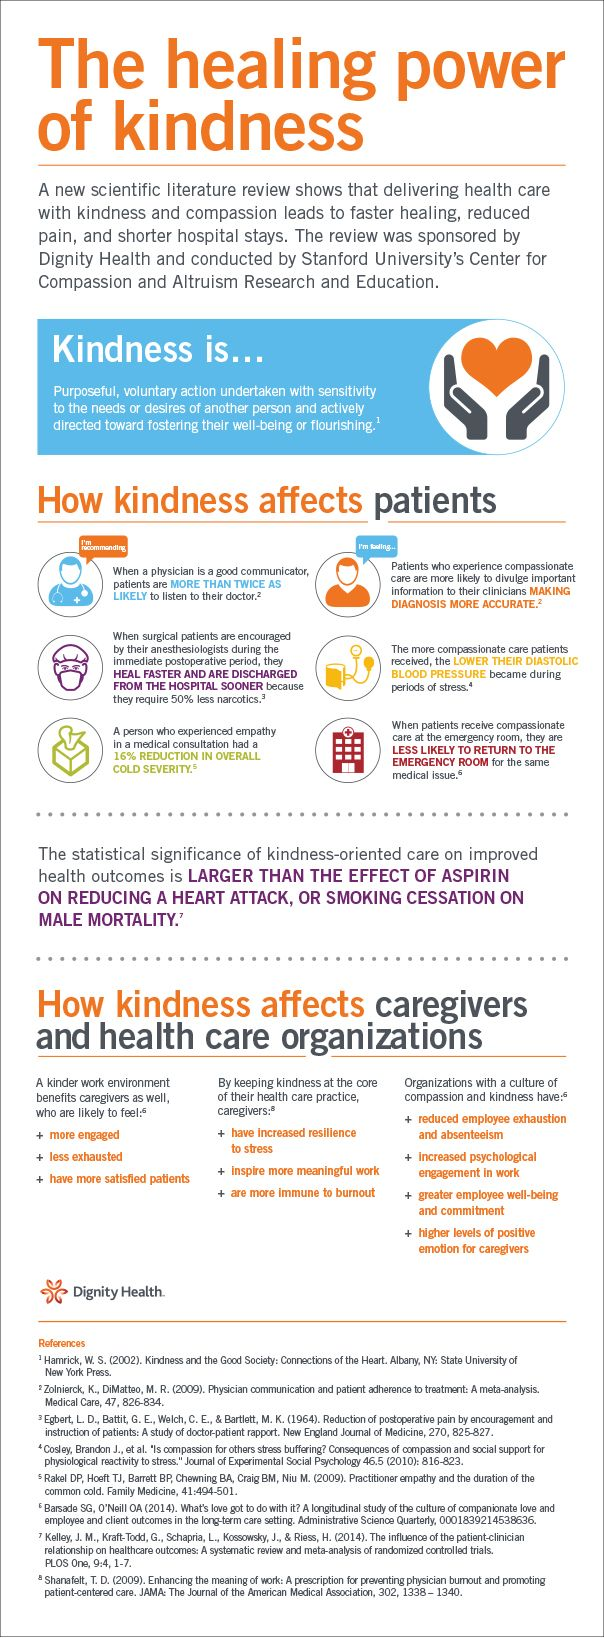 Research shows that kindness and compassion has a measurable positive effect on both patients and caregivers in hospitals.  #kindness #compassion #caregiving